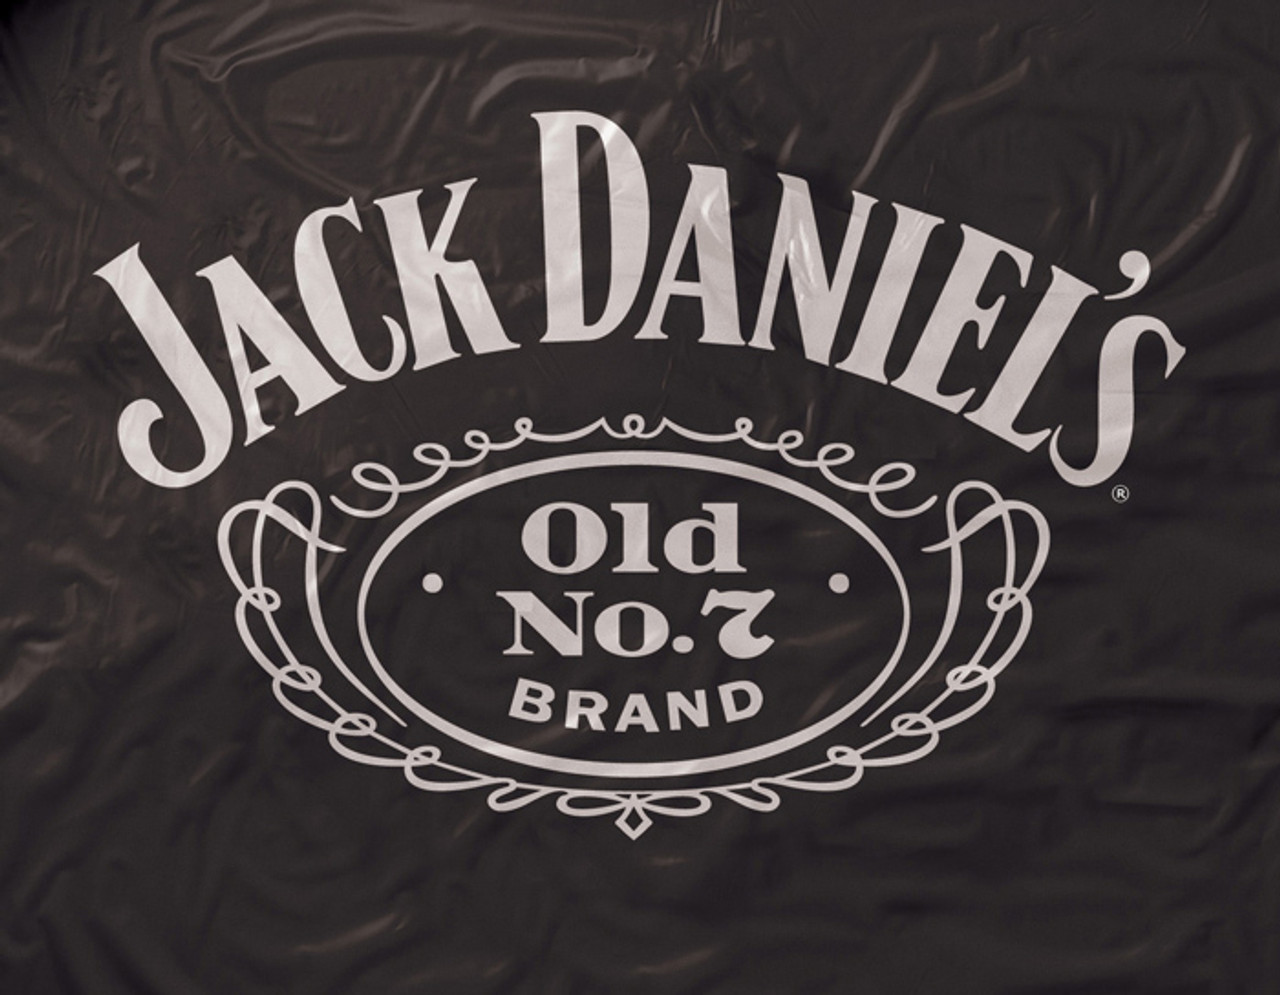 Jack Daniels Black Vinyl Pool Table Cover Ozone Billiards - Jack daniels pool table